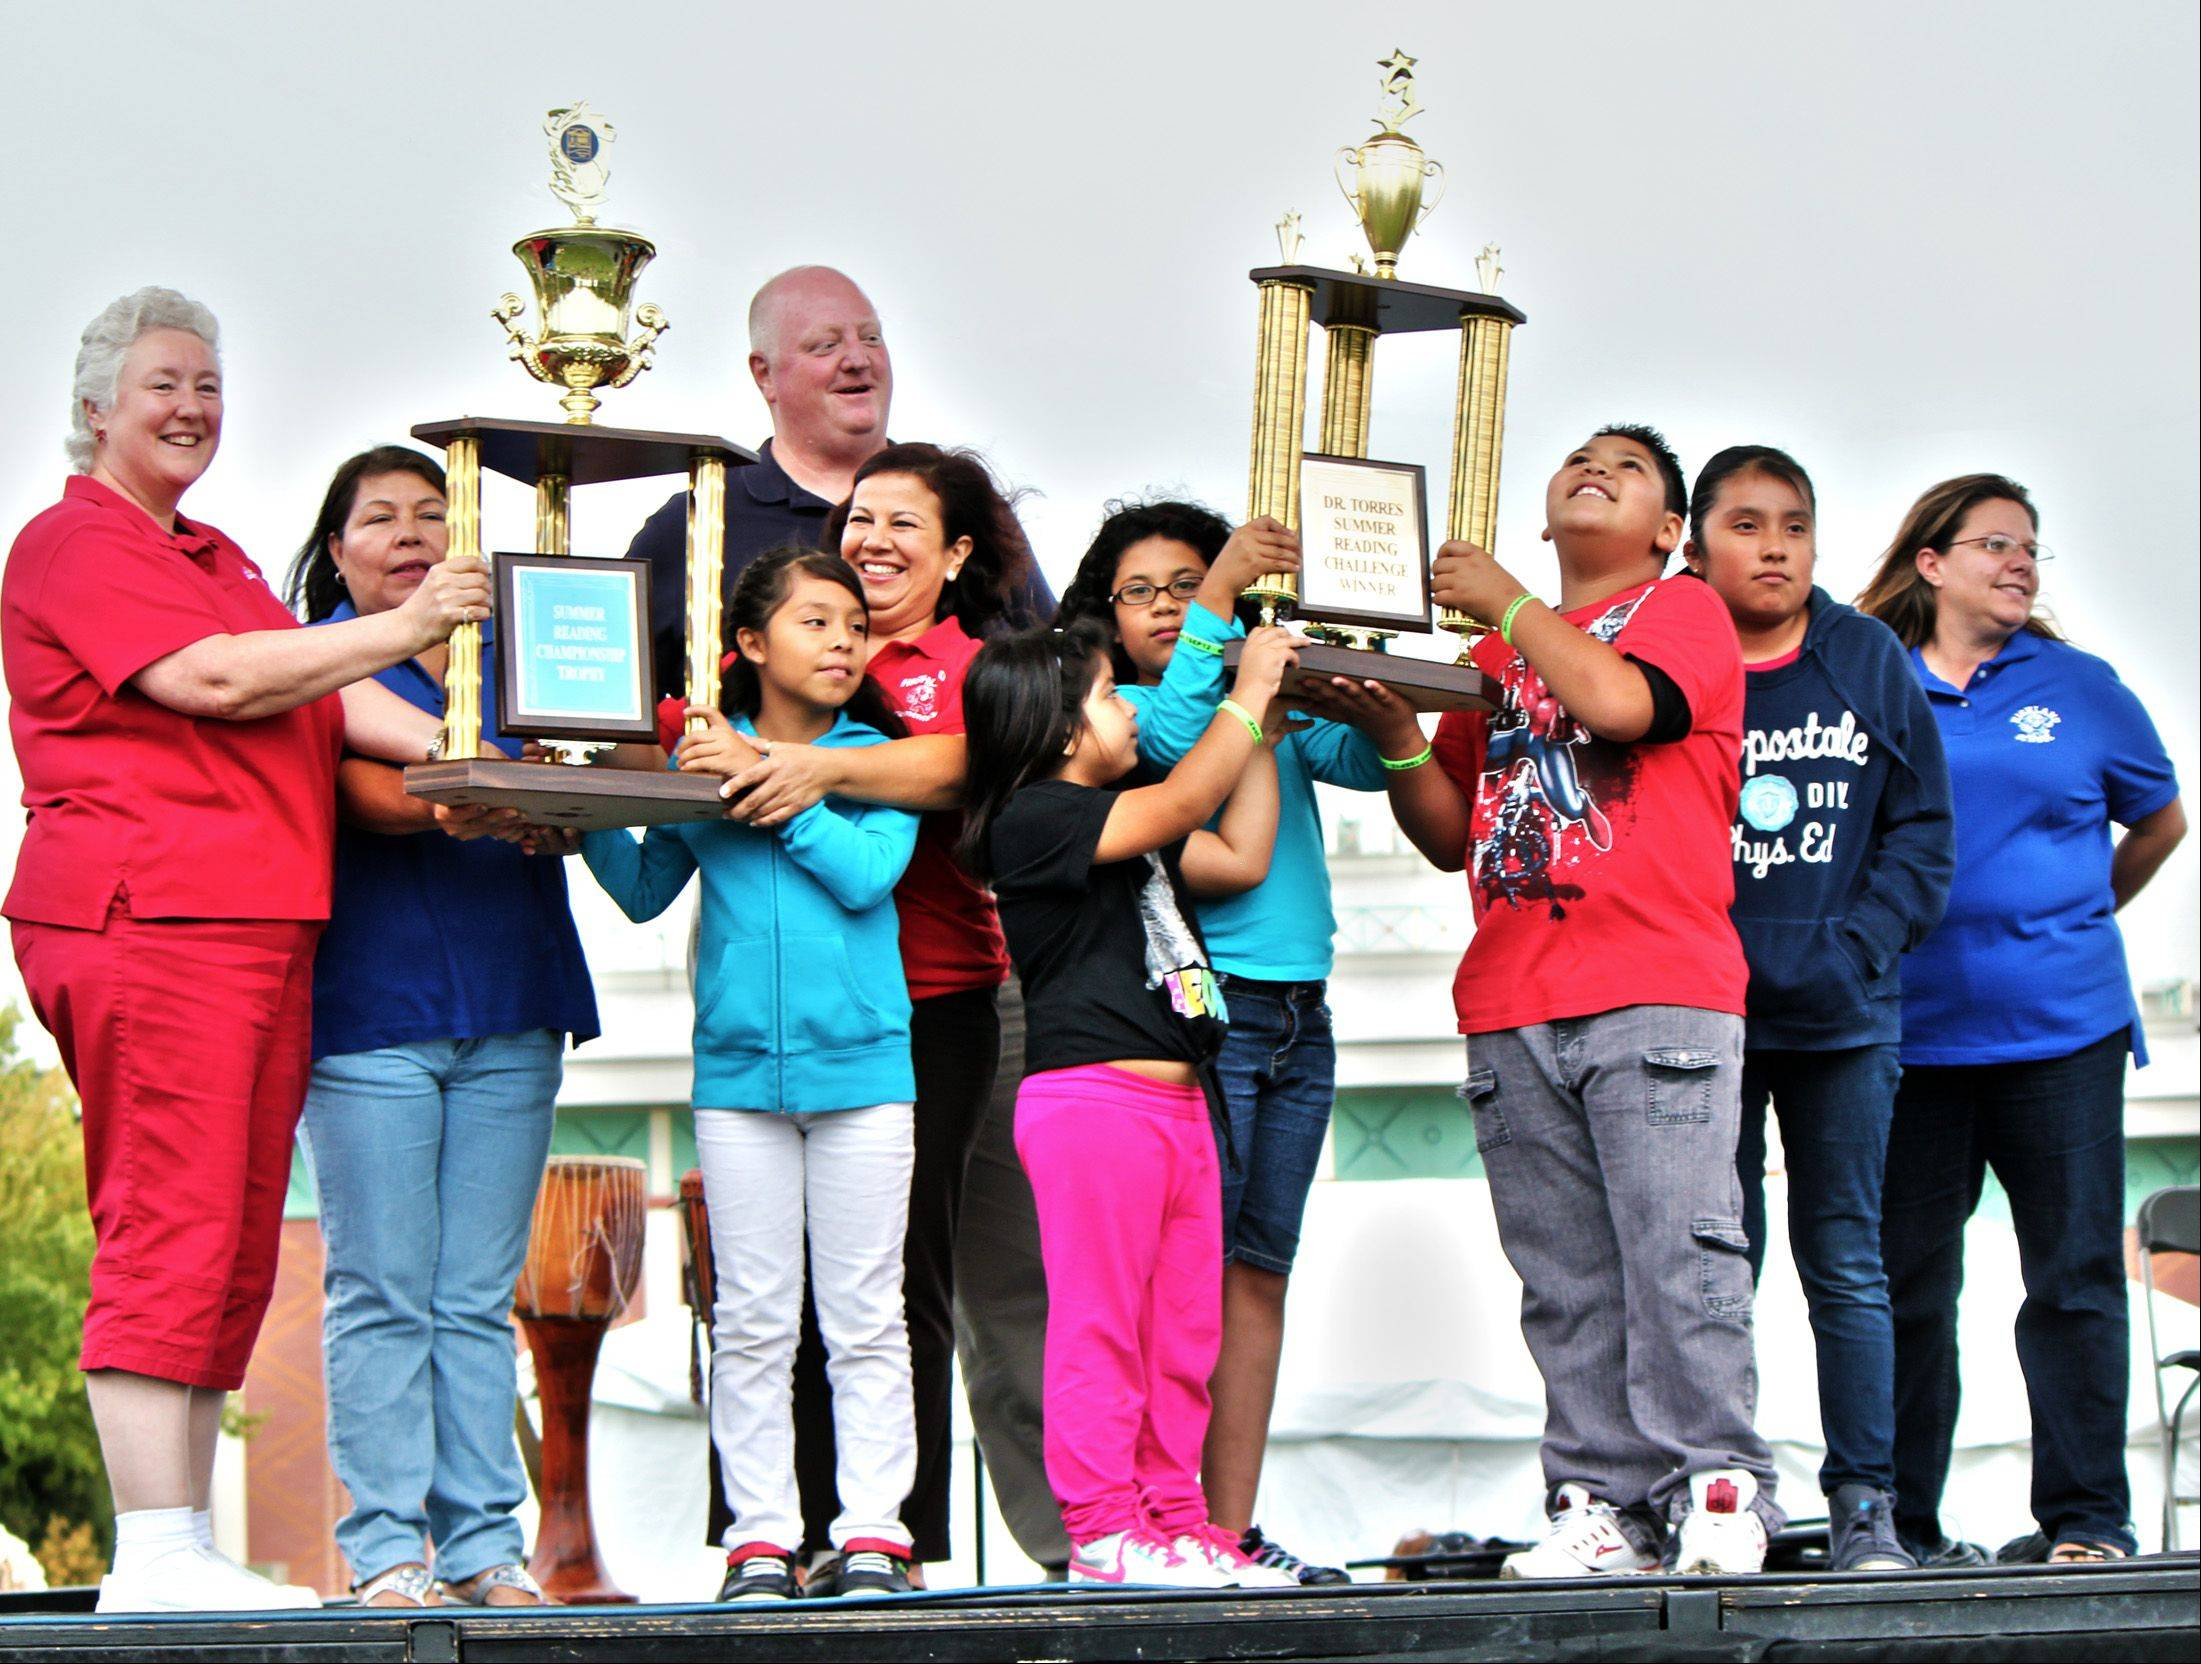 Highland Elementary School Principal Steve Johnson joins teachers and students in celebrating the school's victory in the Elgin Area School District U-46 Summer Reading Program. More than 70 percent of the school's population completed the challenge, which is sponsored by Superintendent Jose Torres.